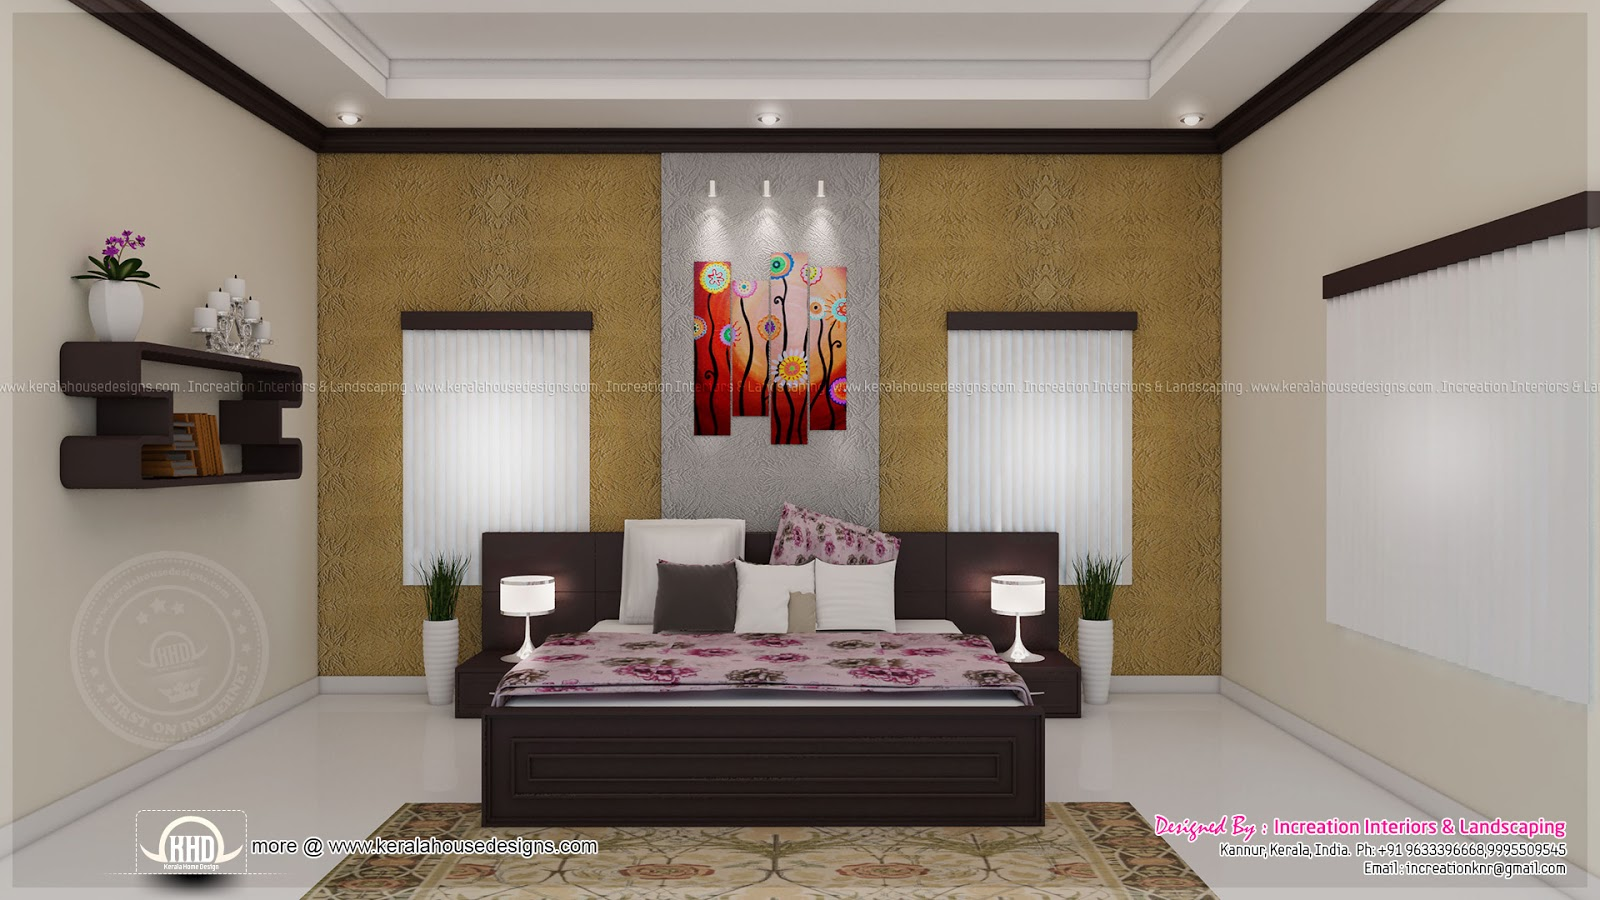 House interior ideas in 3d rendering kerala home design for Interior decoration images